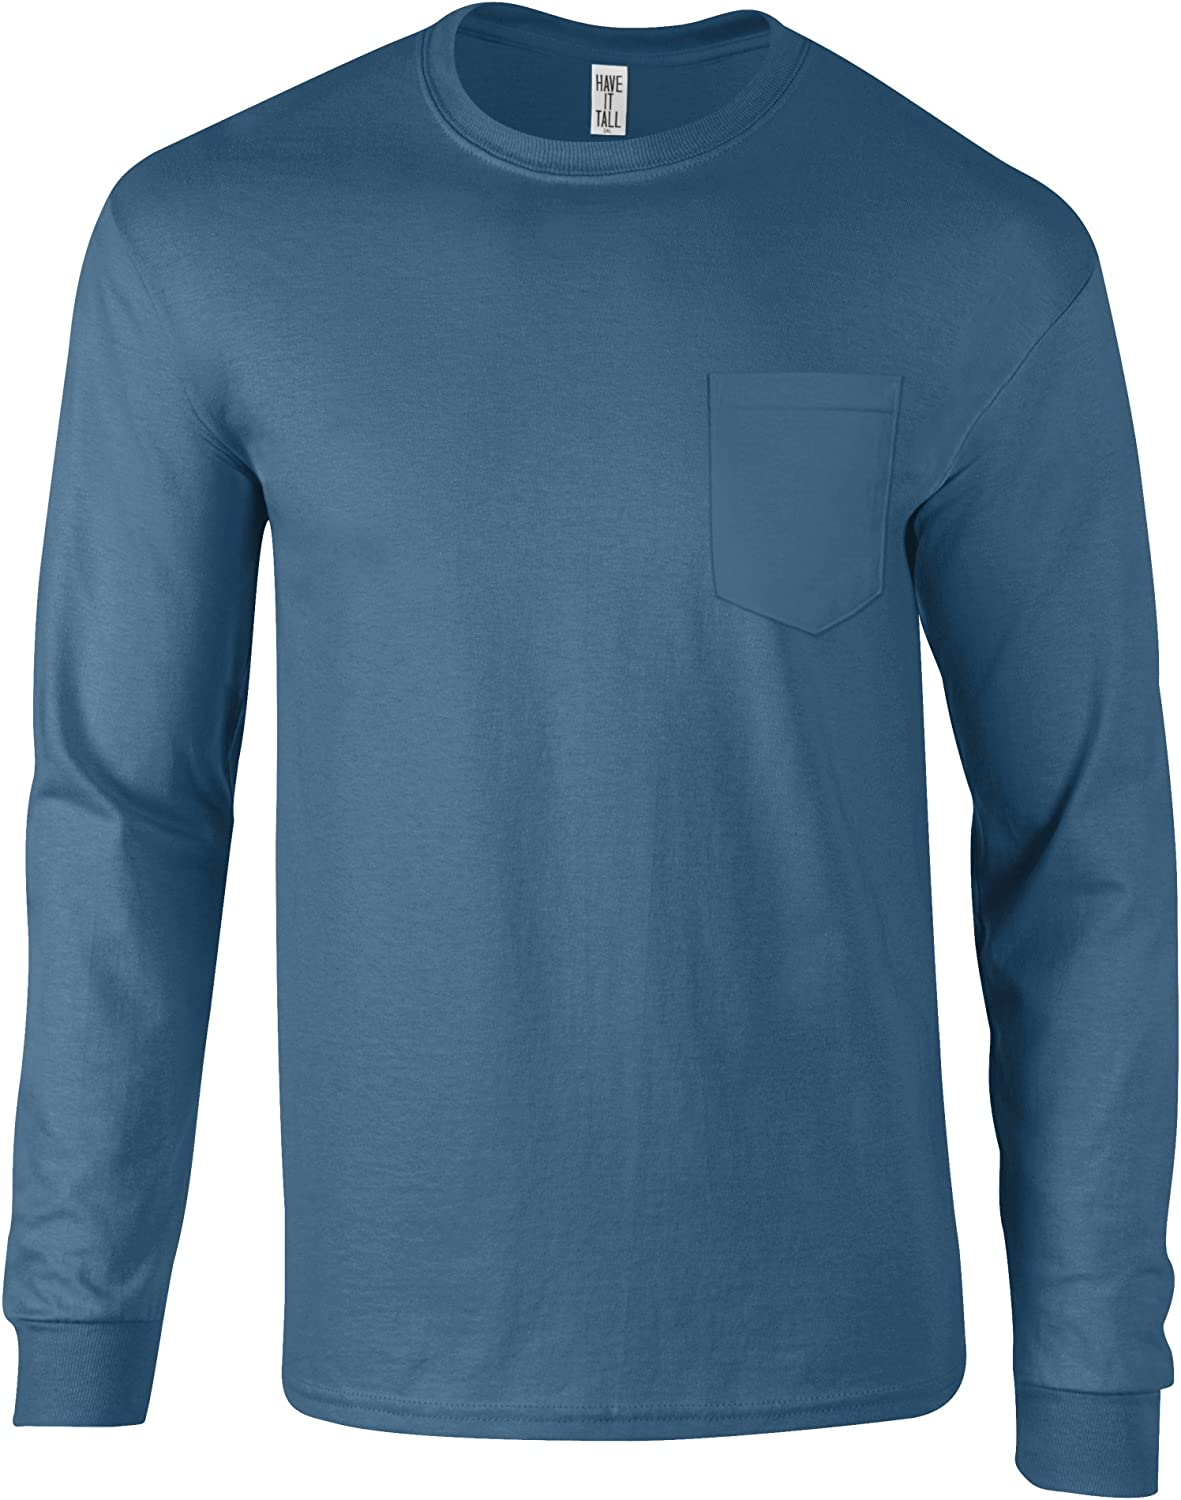 Have It Tall T Shirts for Men and Women Pocket Long Sleeve Sizes S 2XL